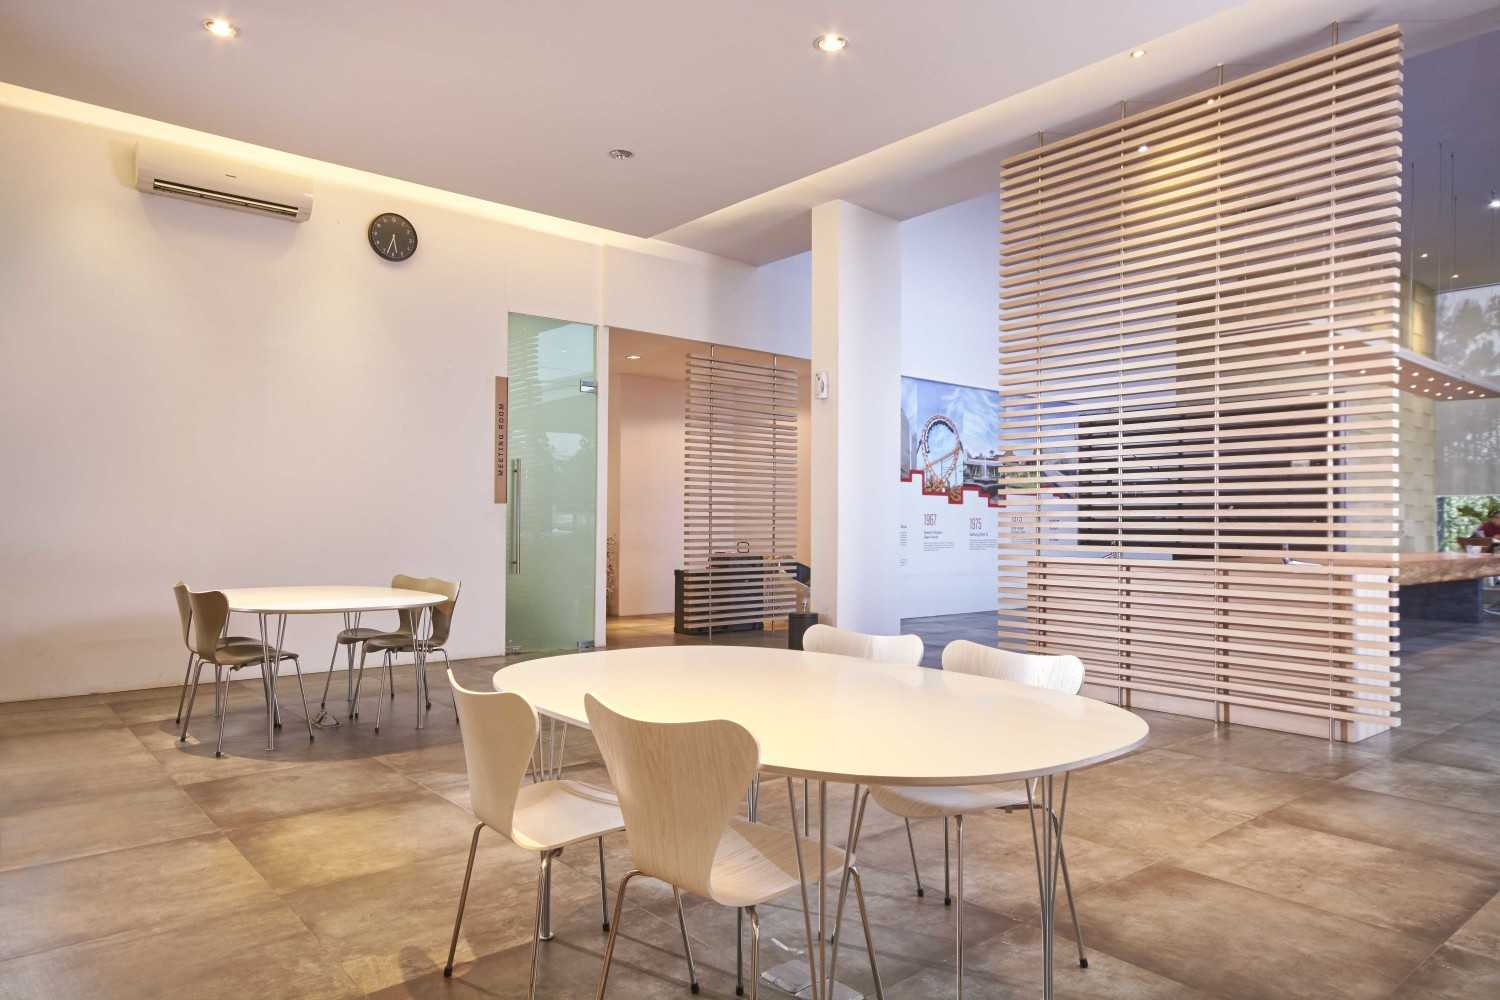 Project jaya real property marketing office interior - How to take interior photos for real estate ...